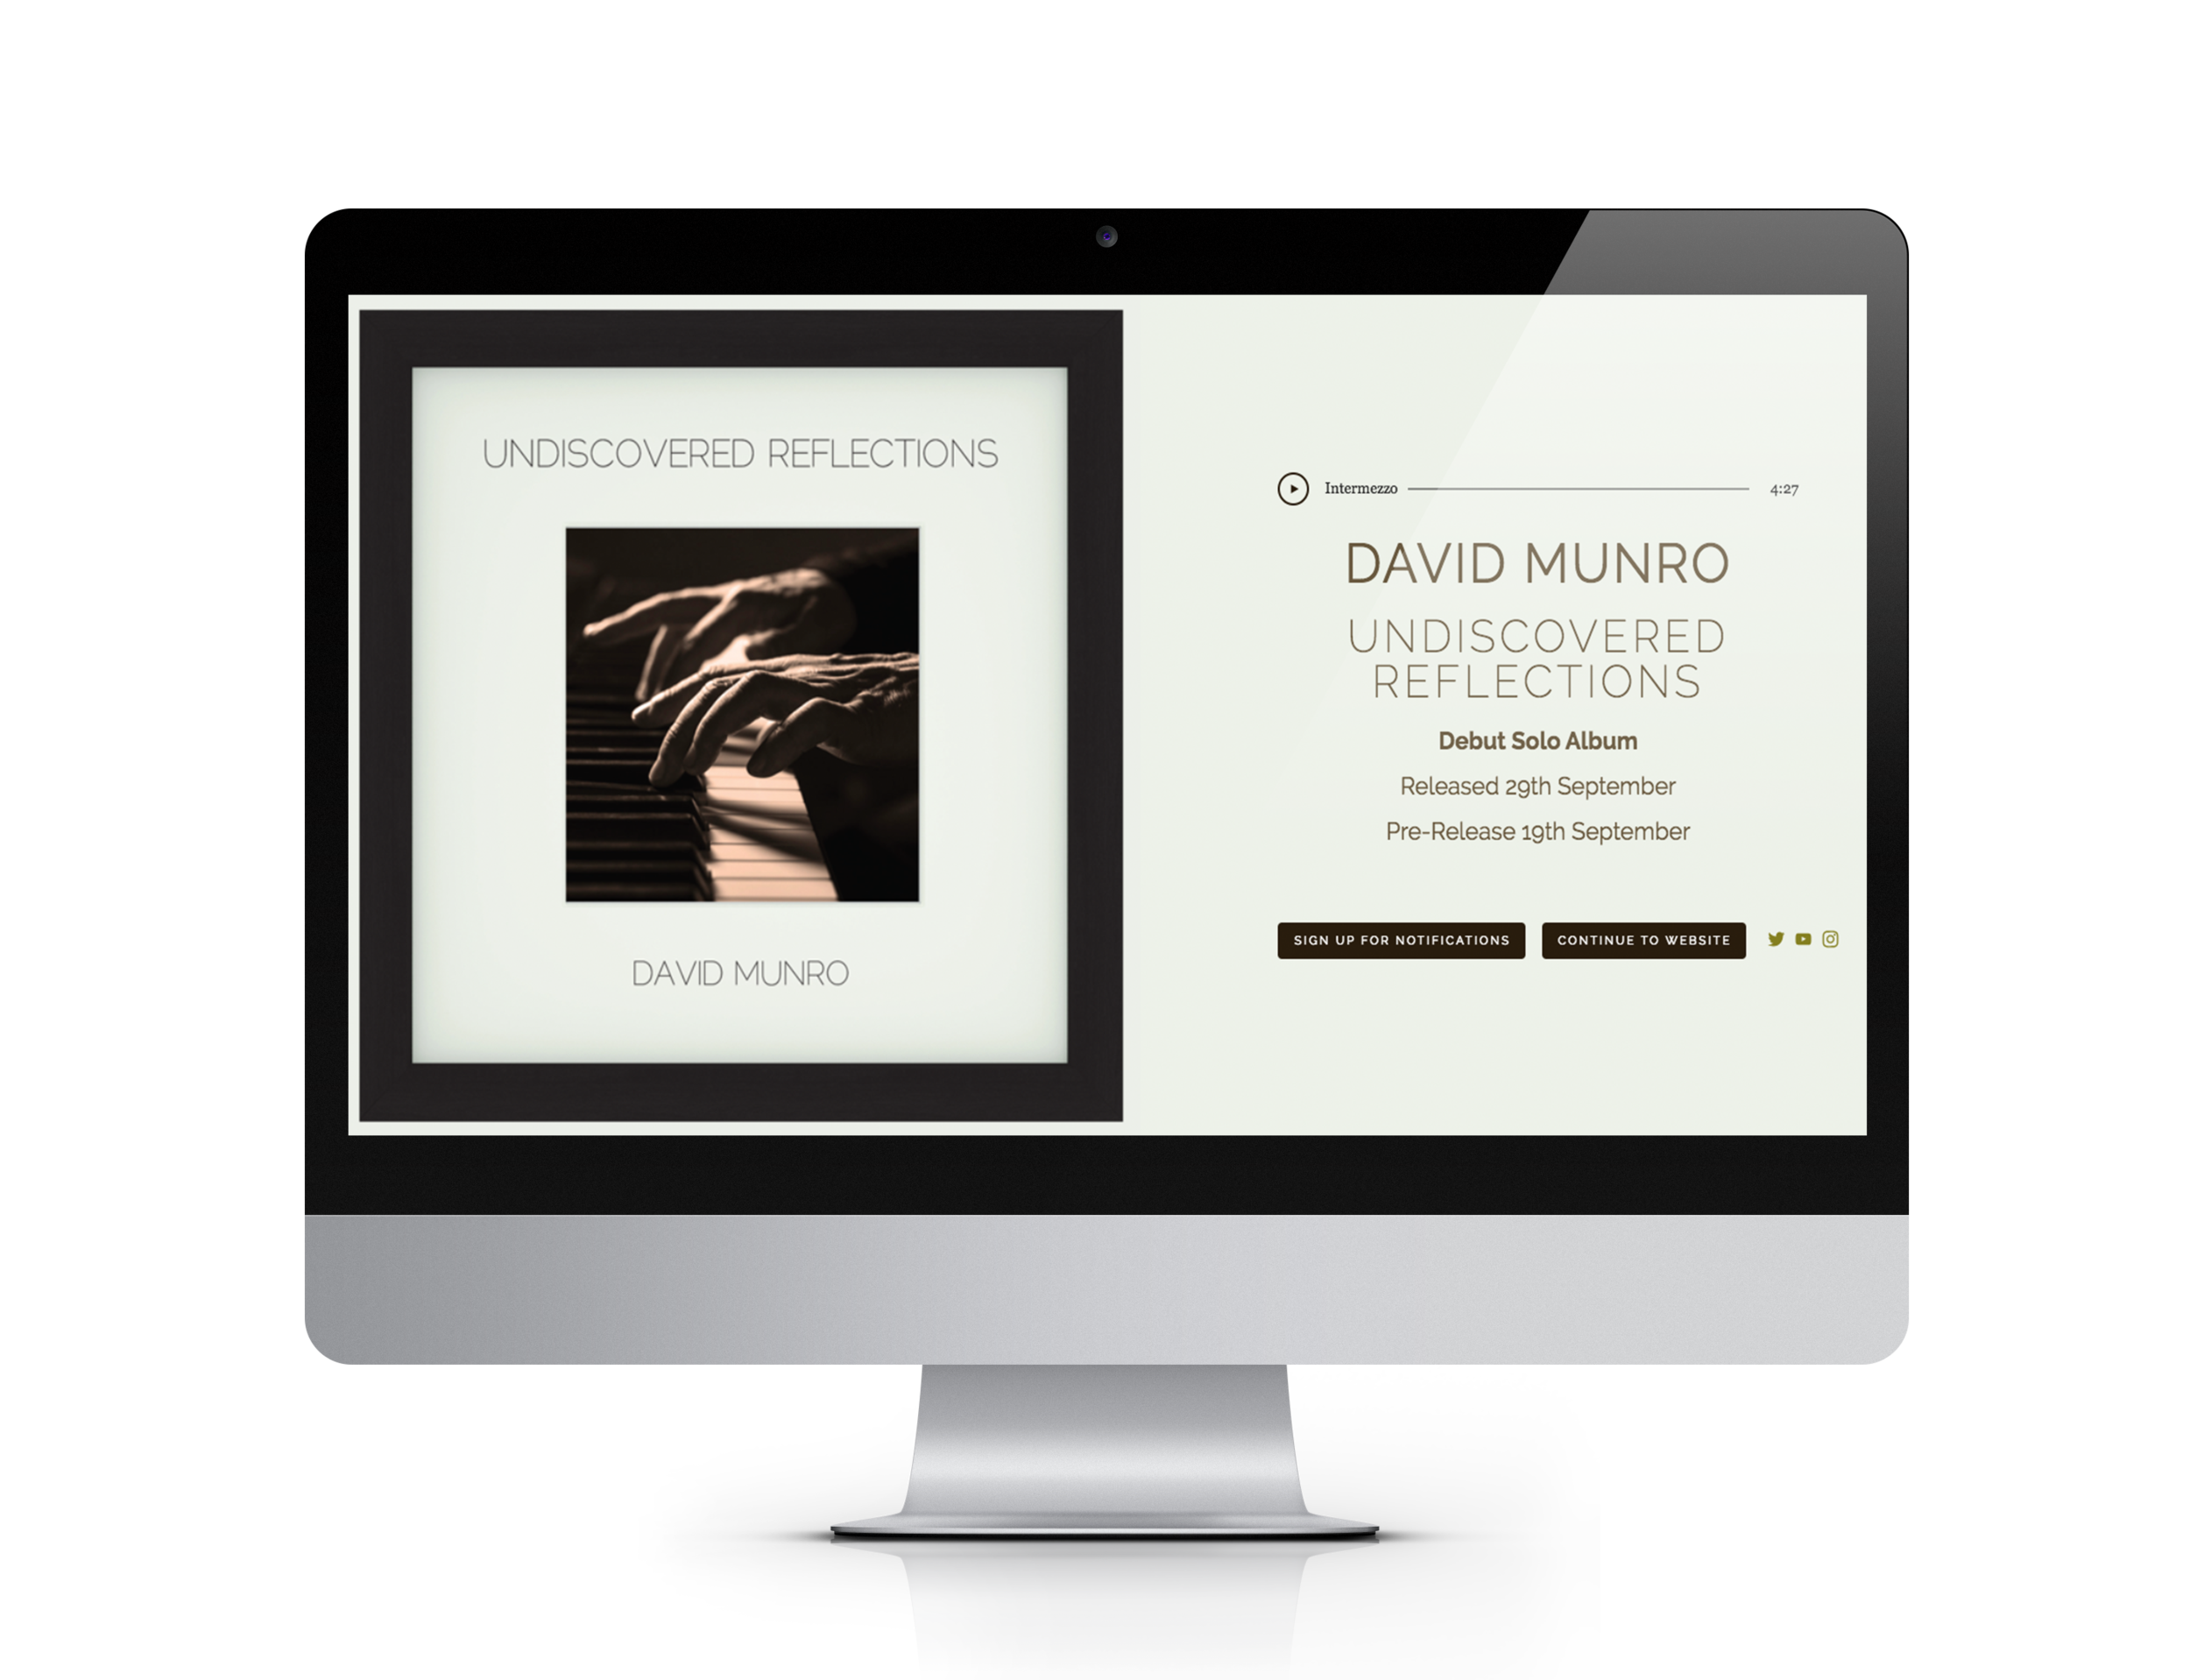 Website for Composer, Pianist and Musical Director David Munro, launching his debut solo album.